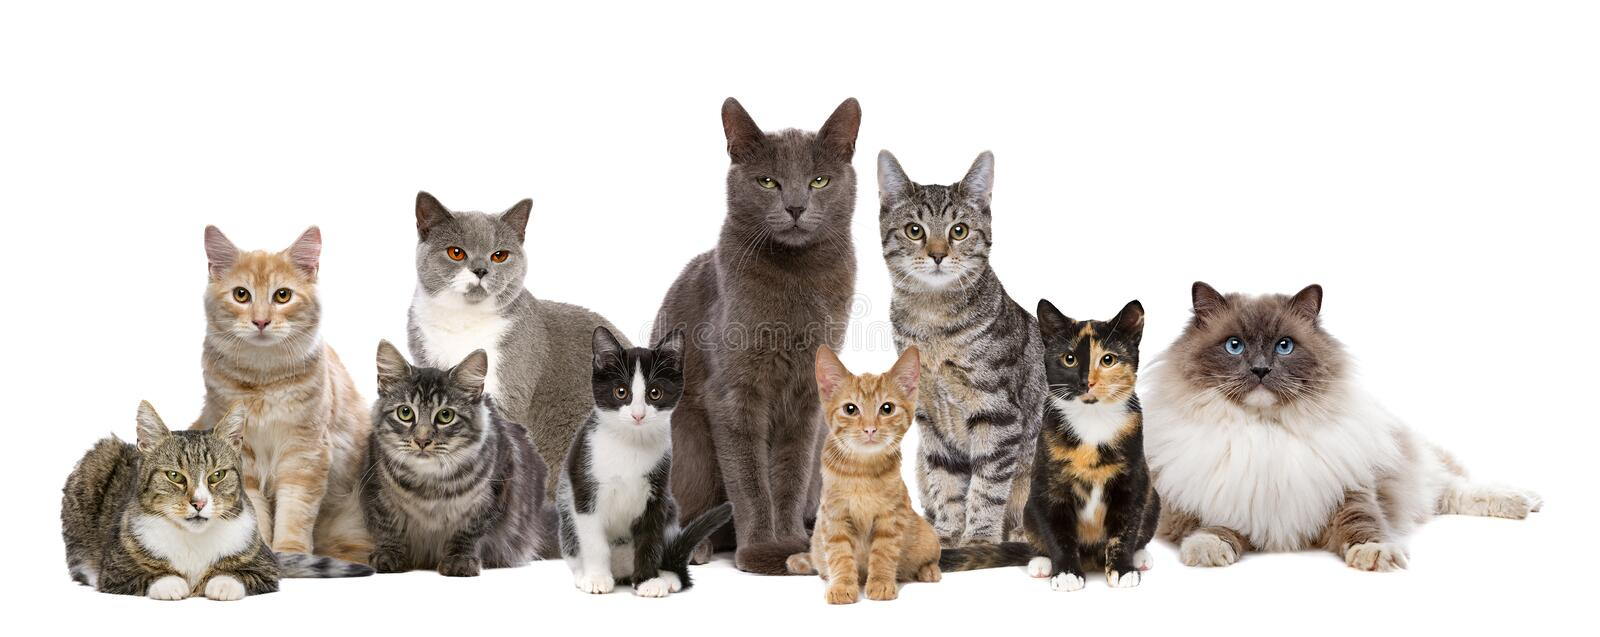 Ten cats in a row. Many Cats sitting in a row, in front of a white background royalty free stock photography